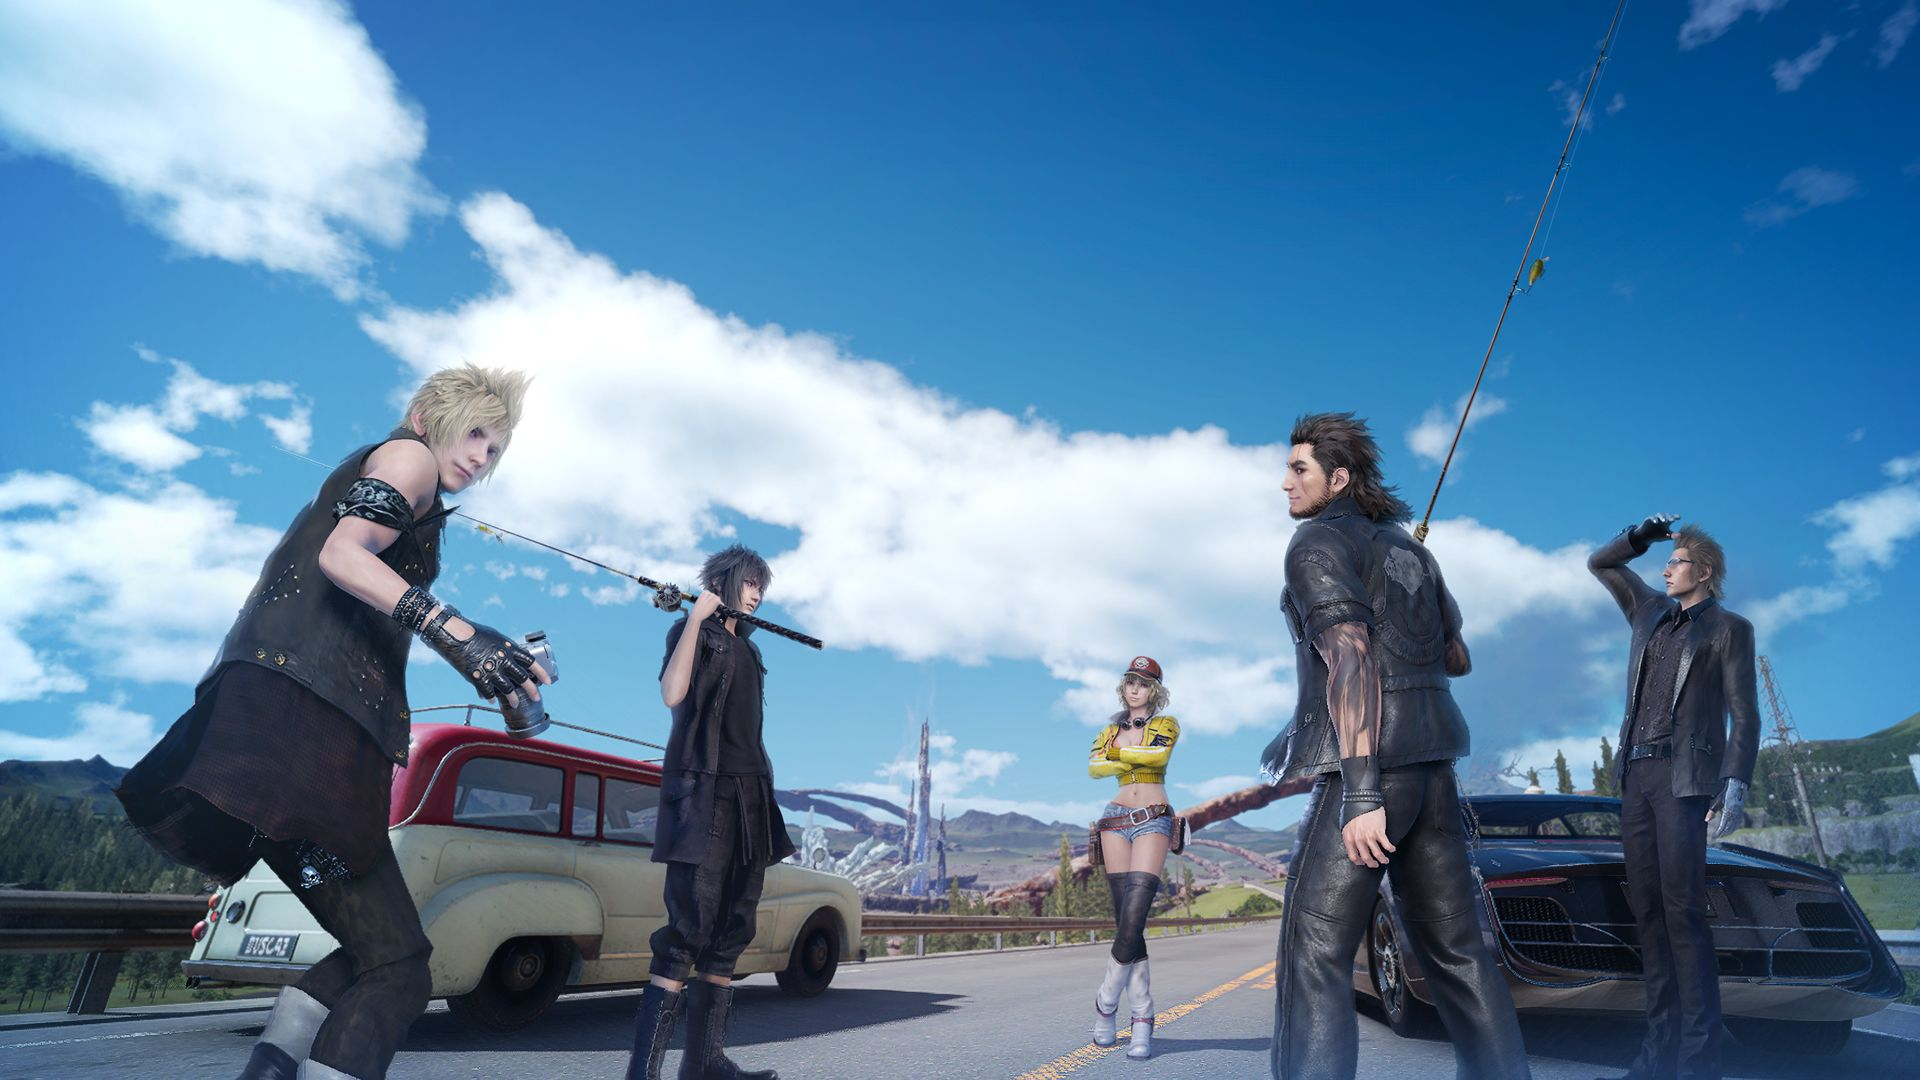 You Can Finally Reel In Monster Of The Deep Final Fantasy Xv On Psvr Final Fantasy Xv Final Fantasy Final Fantasy Characters Monster of deep final fantasy xv